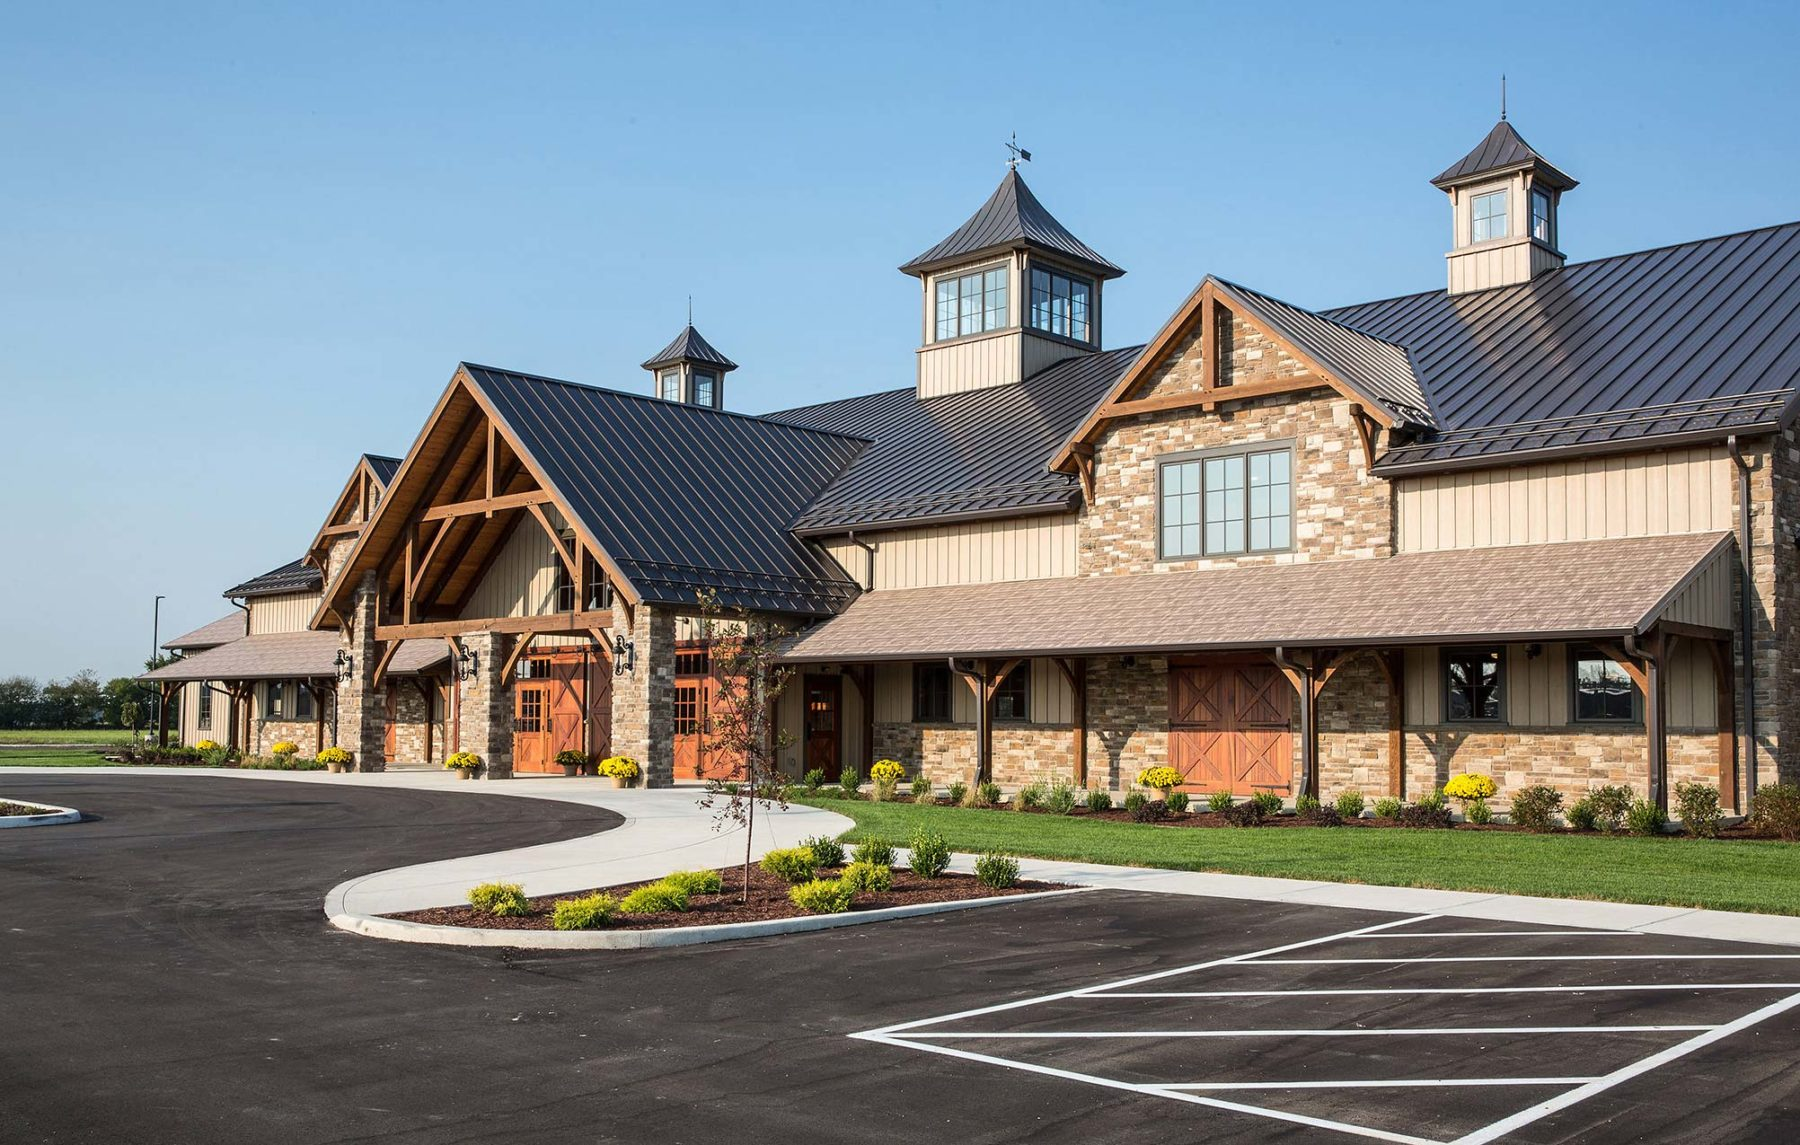 timber-framed event space Indiana exterior